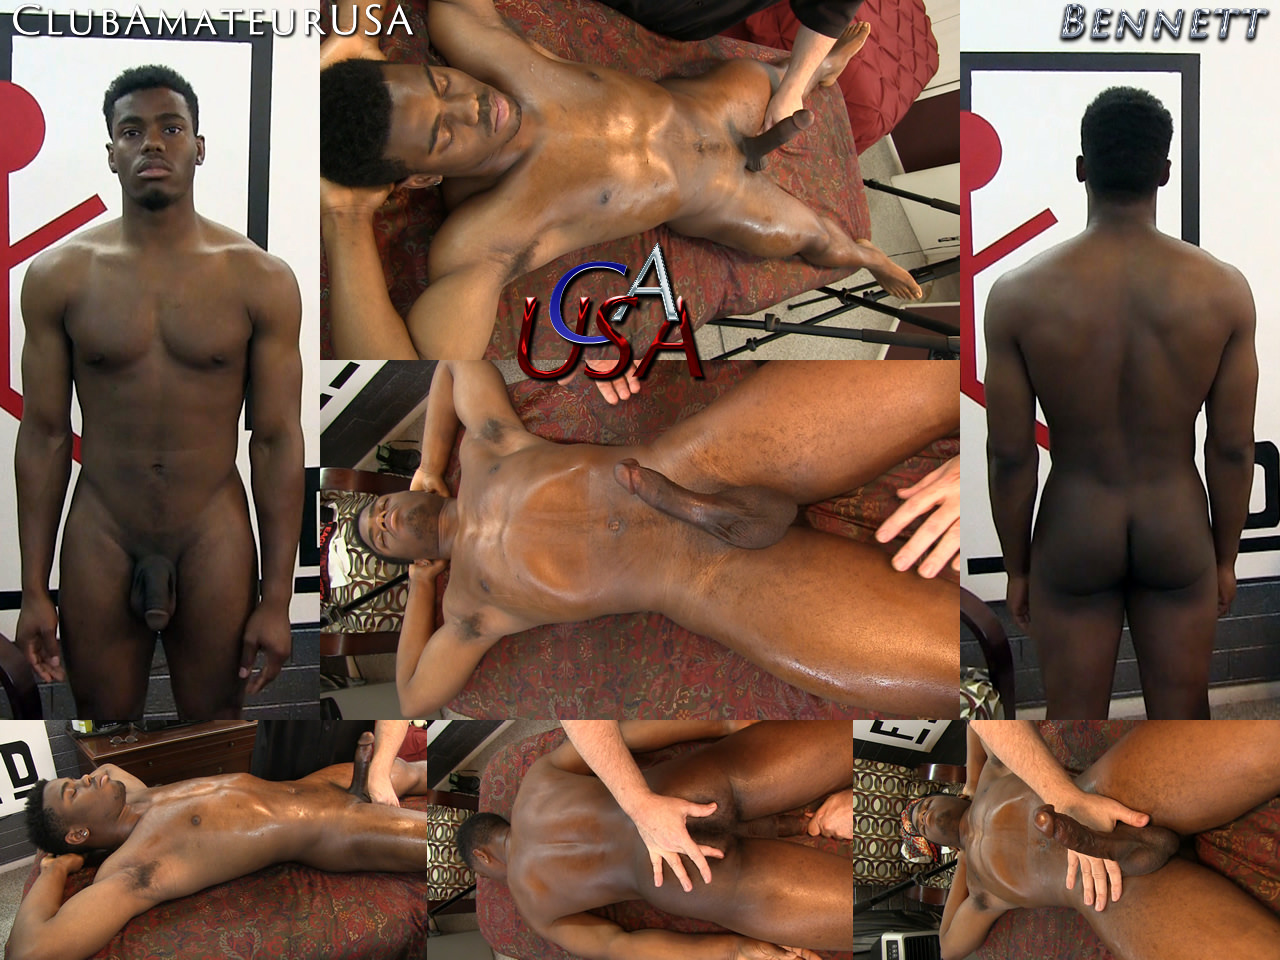 Gay Porn (Gay),Amateur (Gay),Massage (Gay),Club Amateur Usa (Gay),HD Gays,Part 1,Bennett